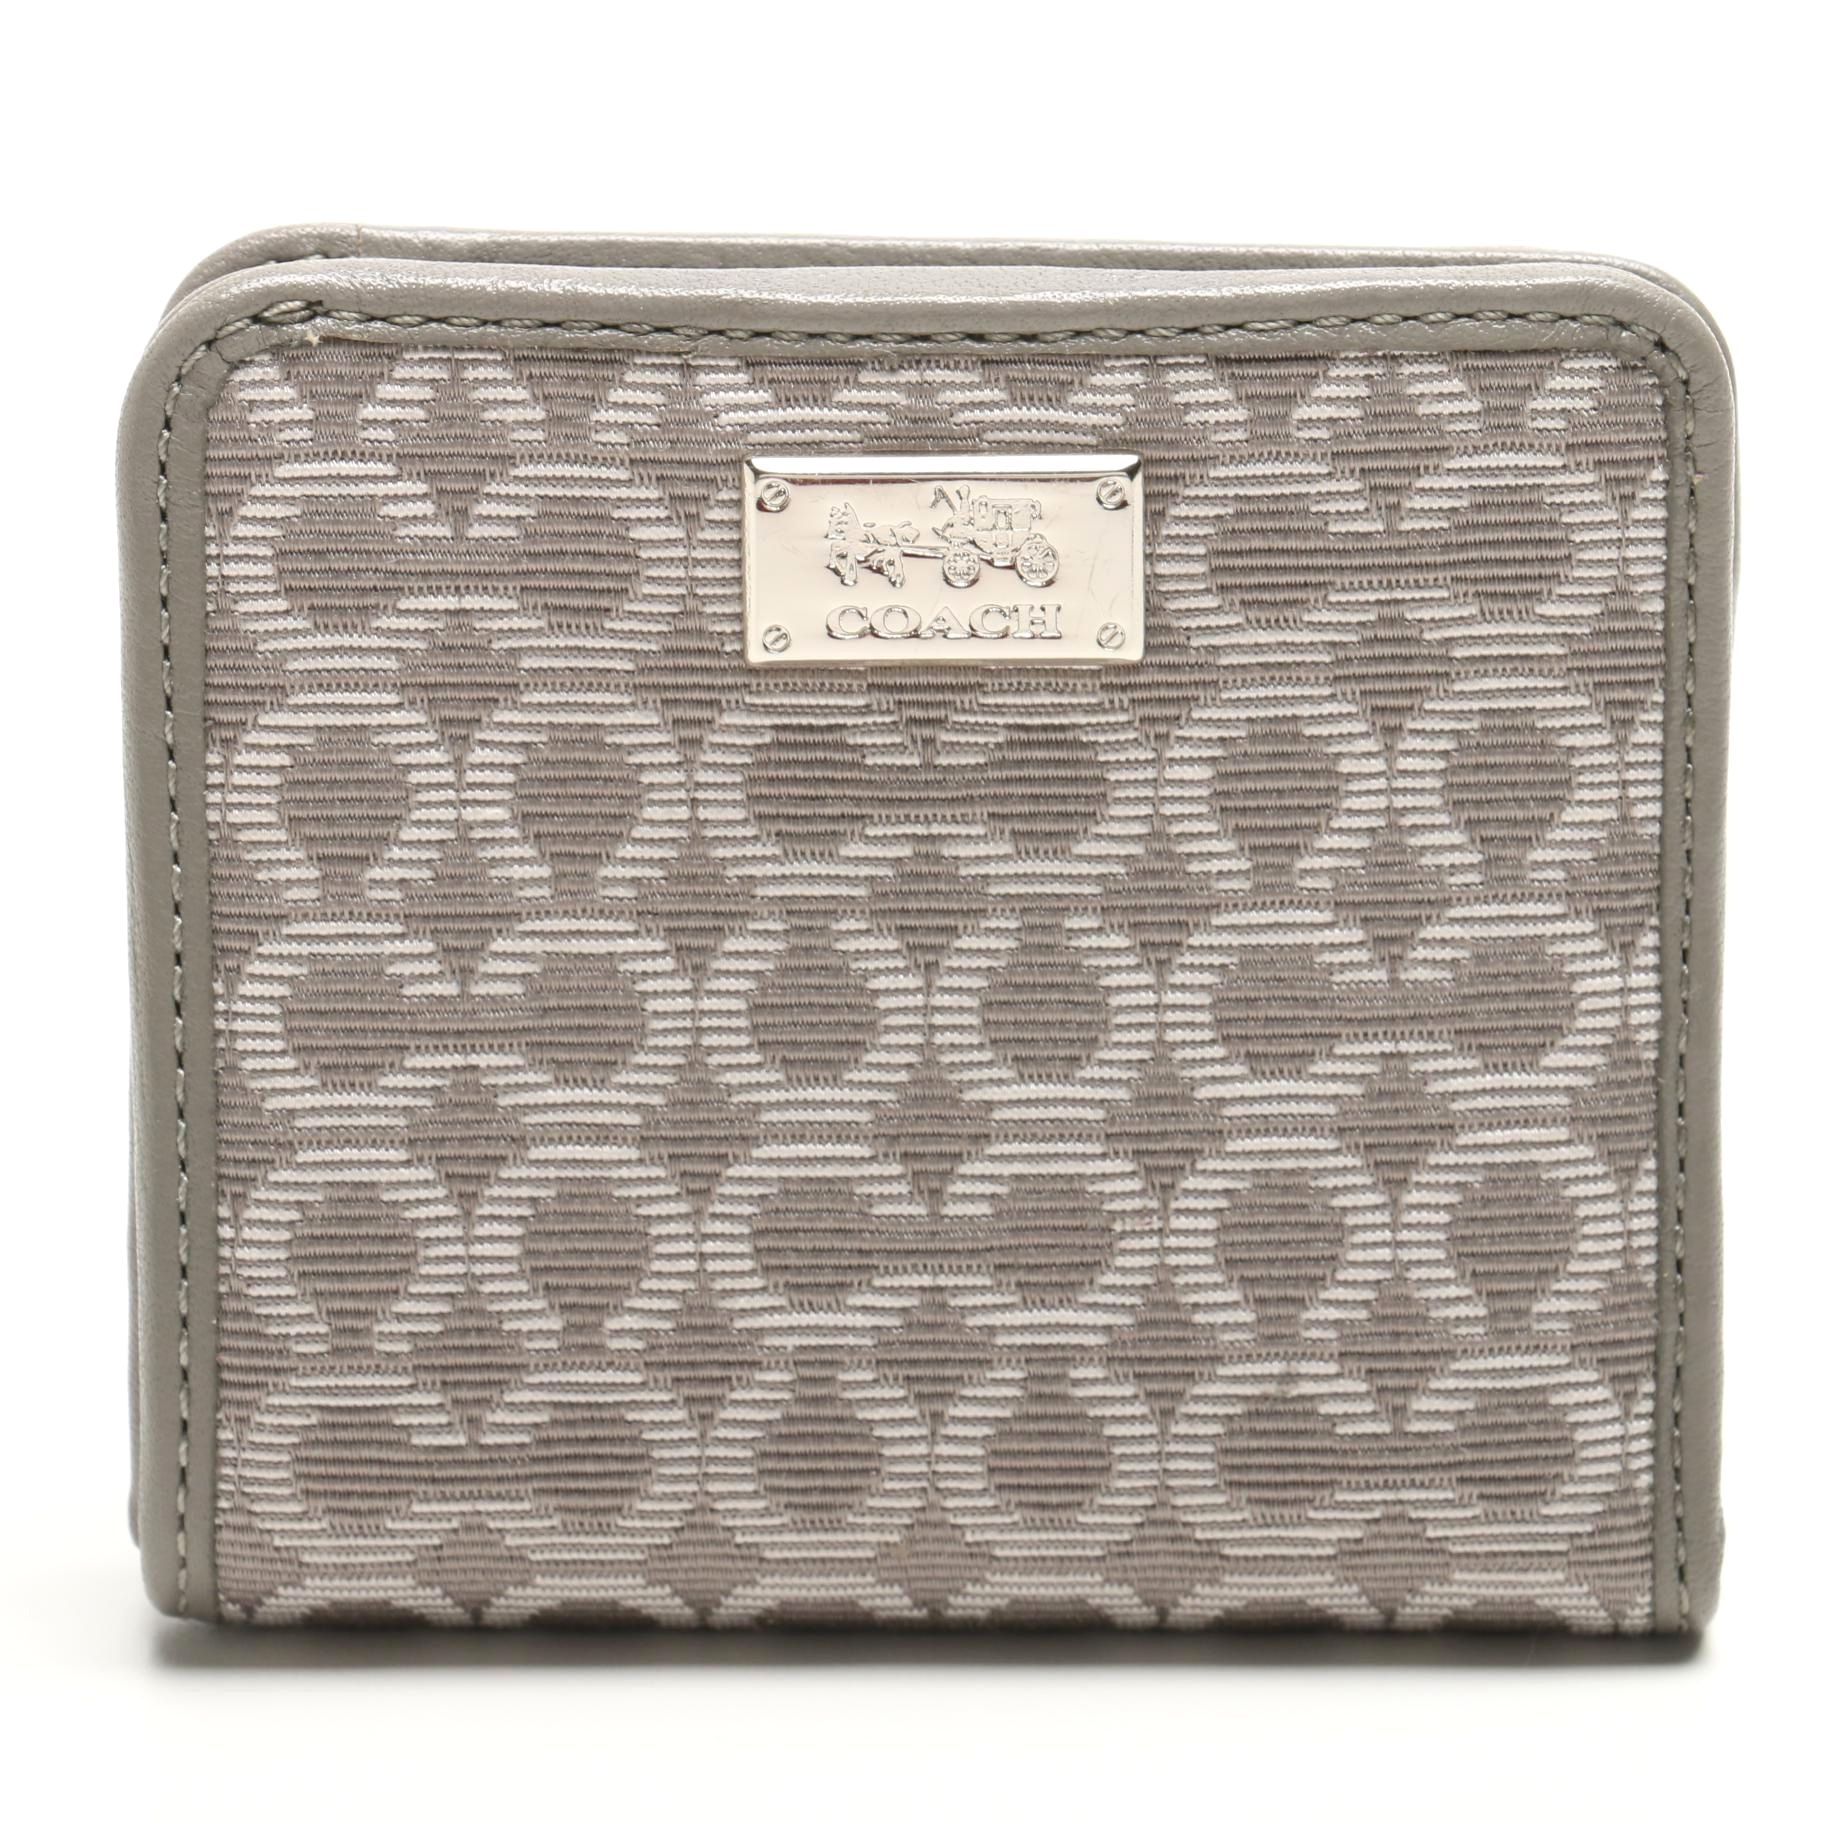 New Coach Monogram Grey Leather Wallet With Tag